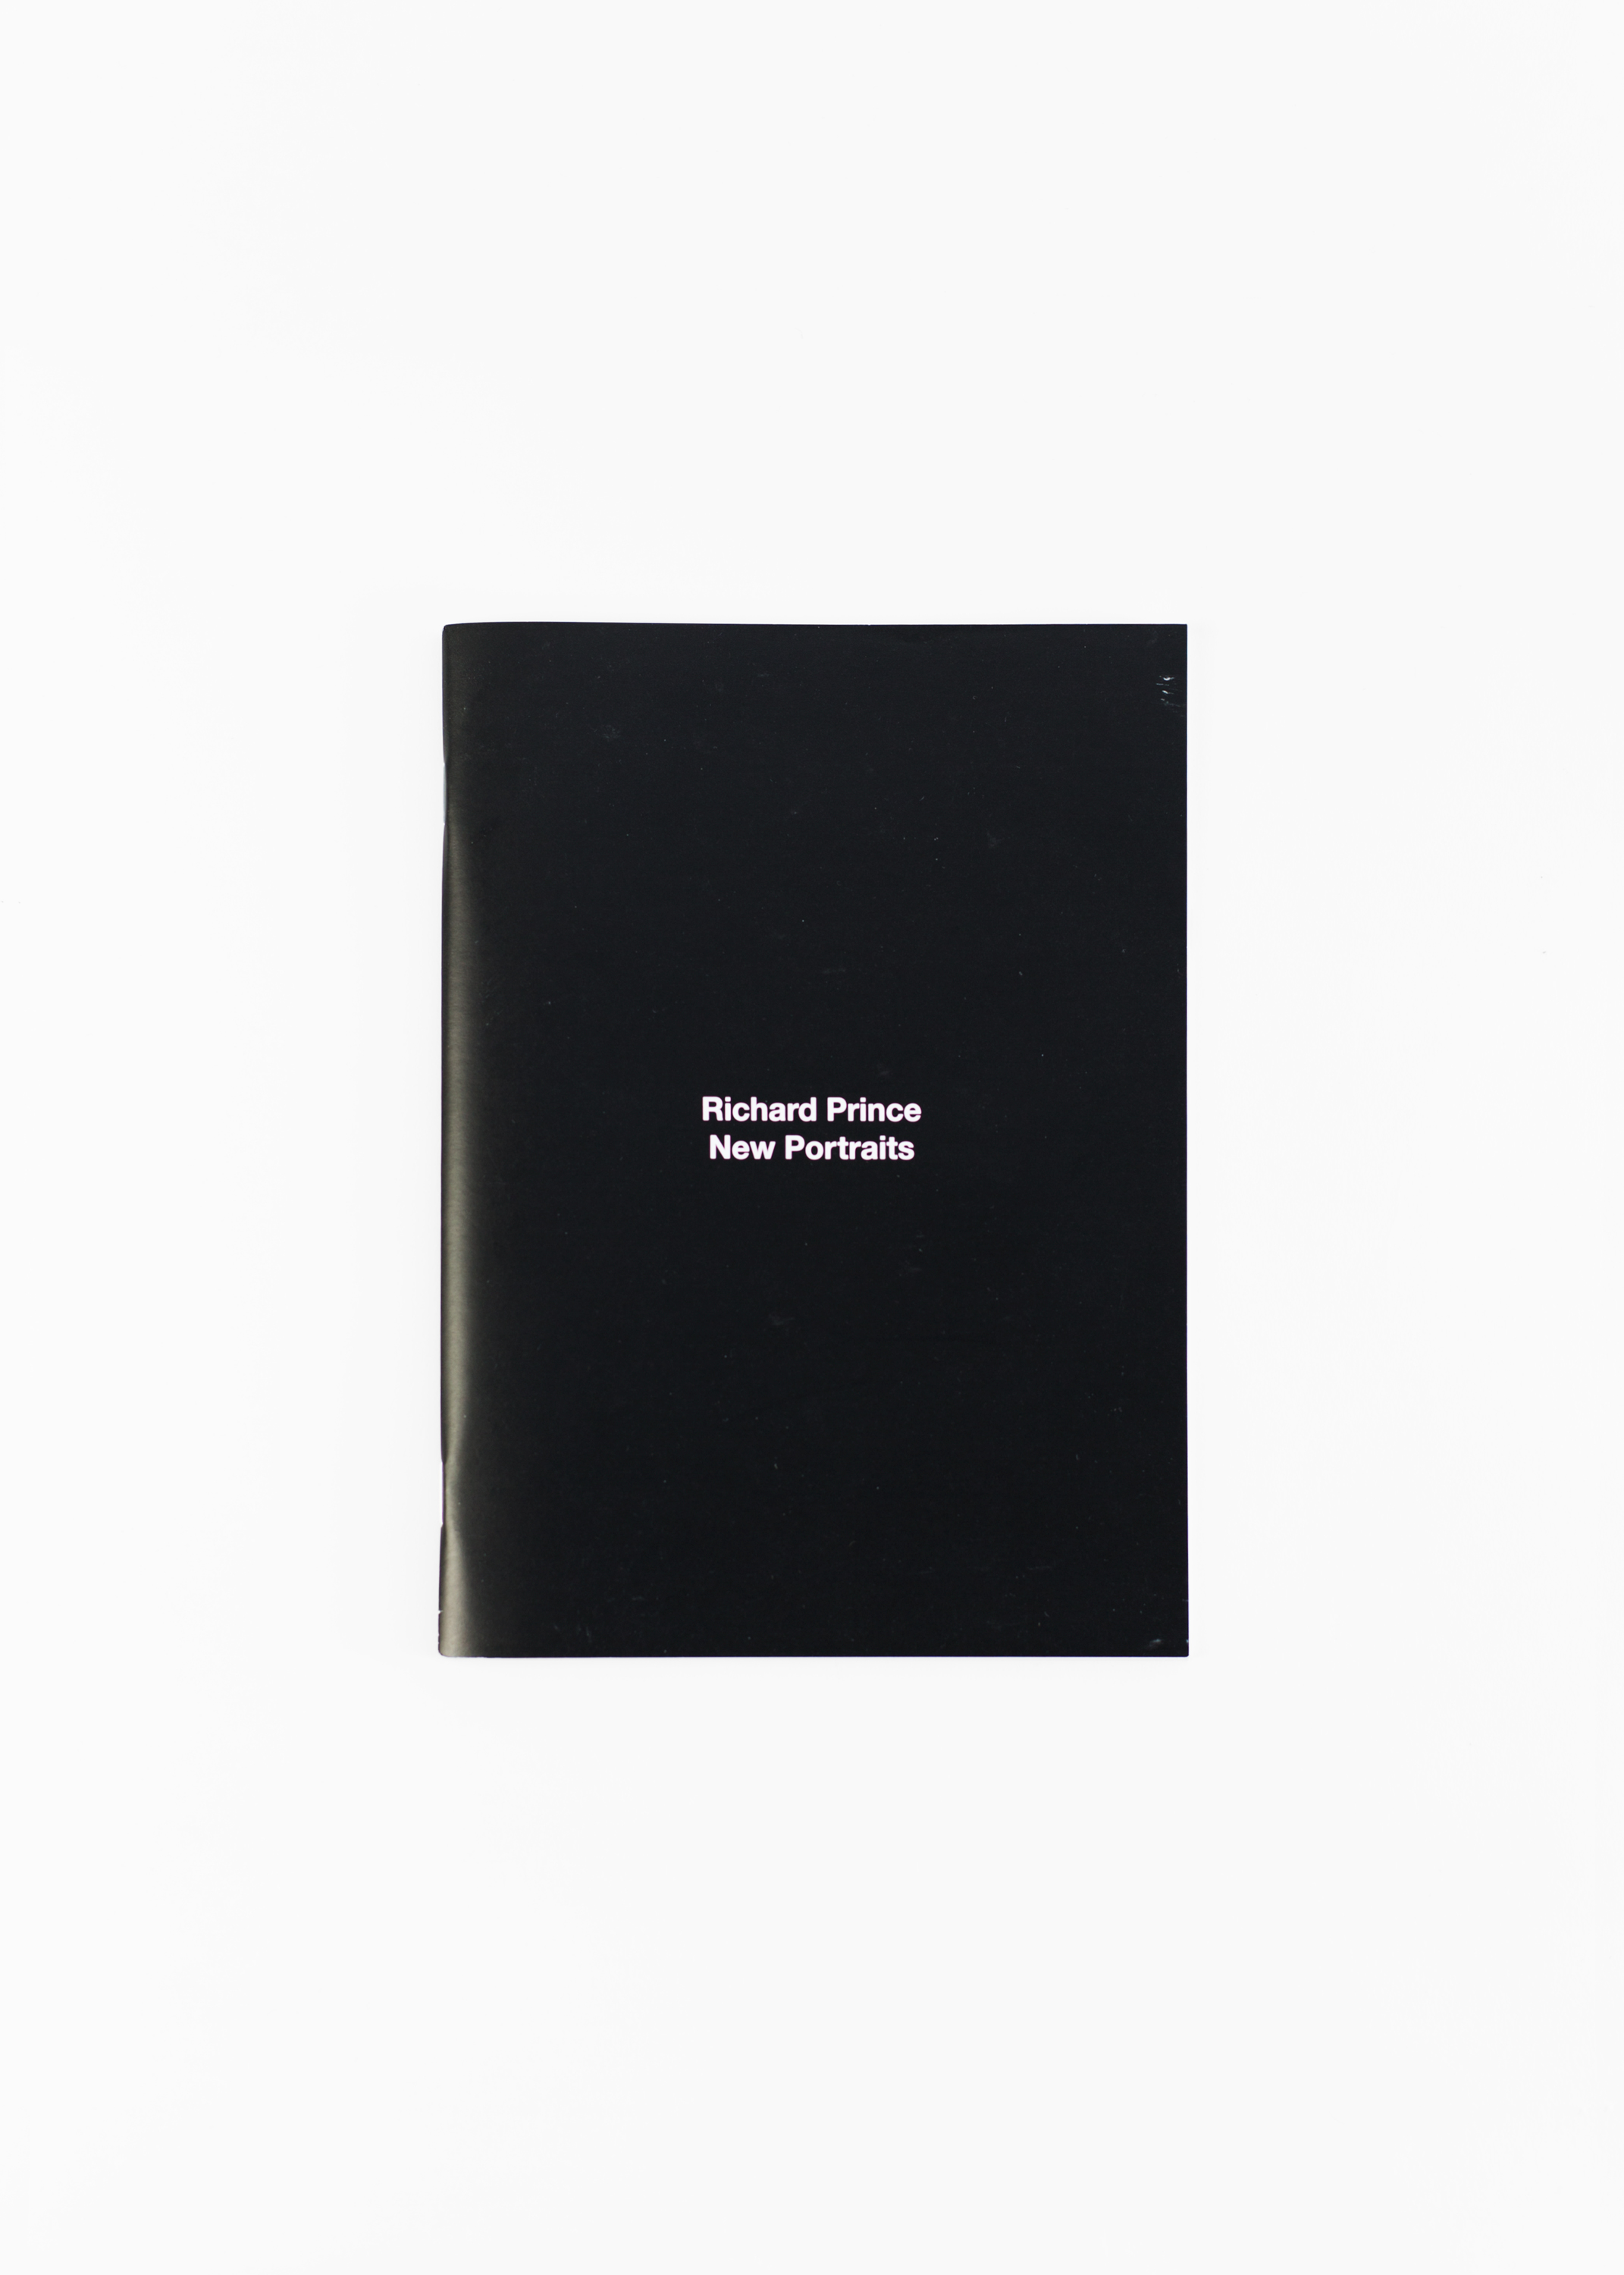 Richard Prince - New Portraits</br>76 pages, 15.5 x 20.5 cm</br>Gagosian 2014</br>Sold out